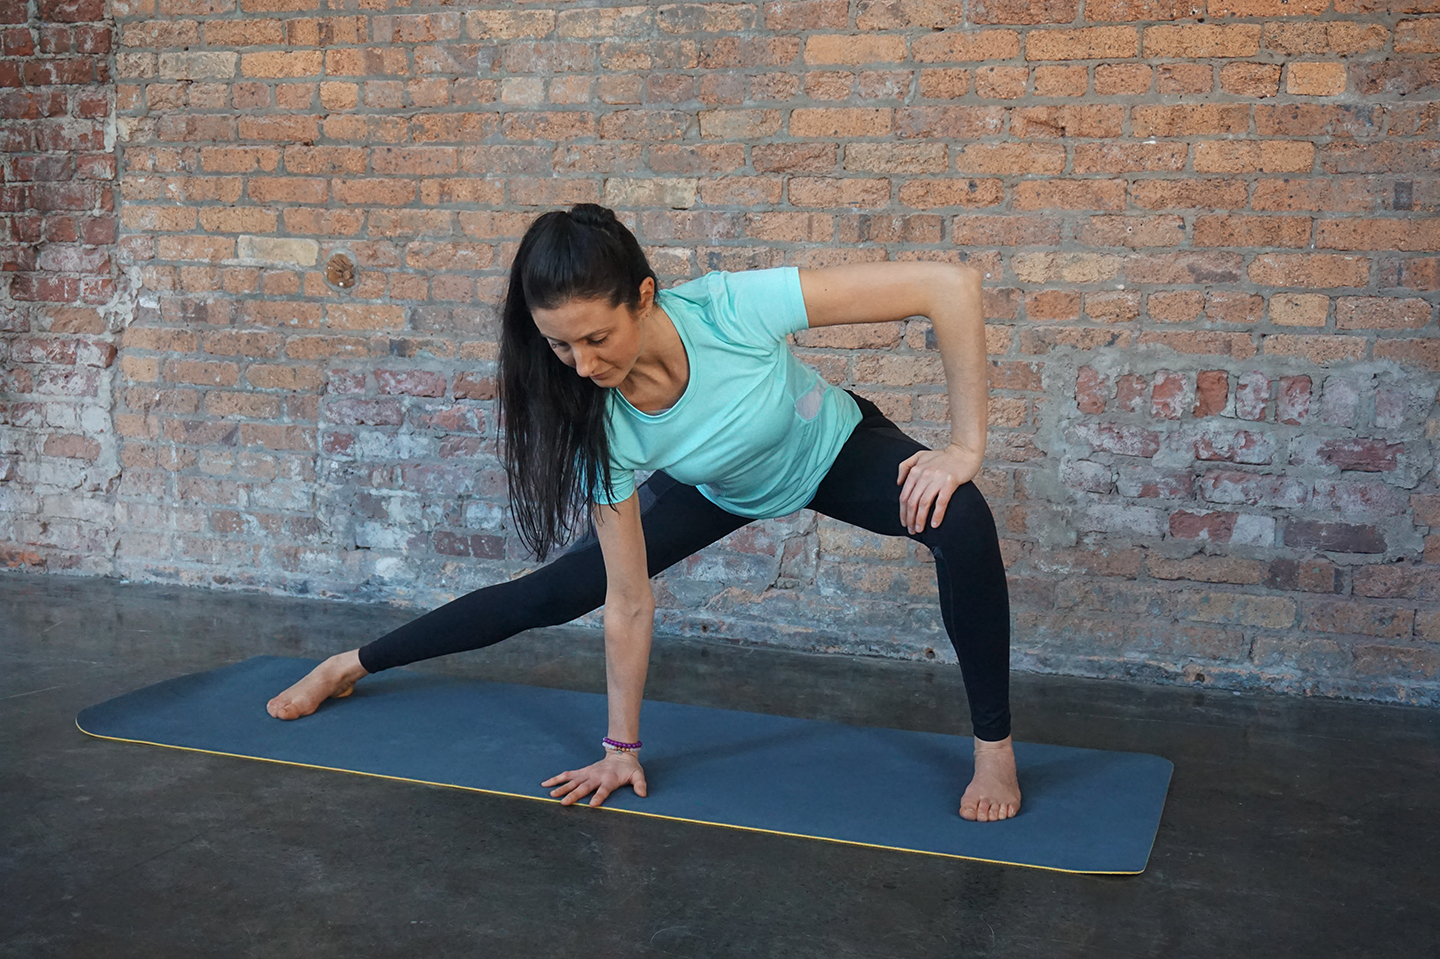 5 yoga poses to improve your flexibility